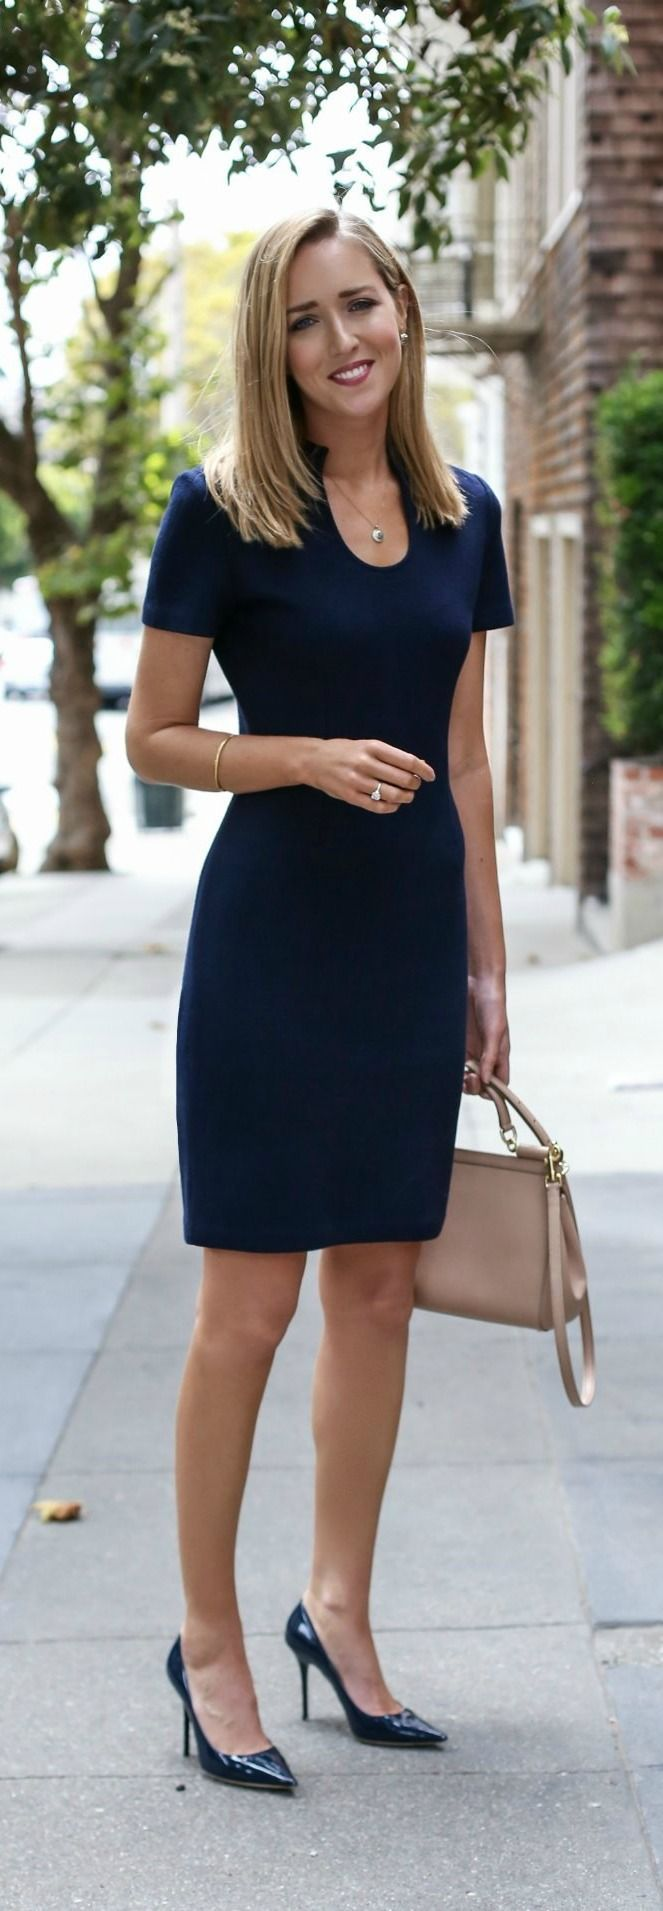 f09849e93dbc navy knit sheath dress